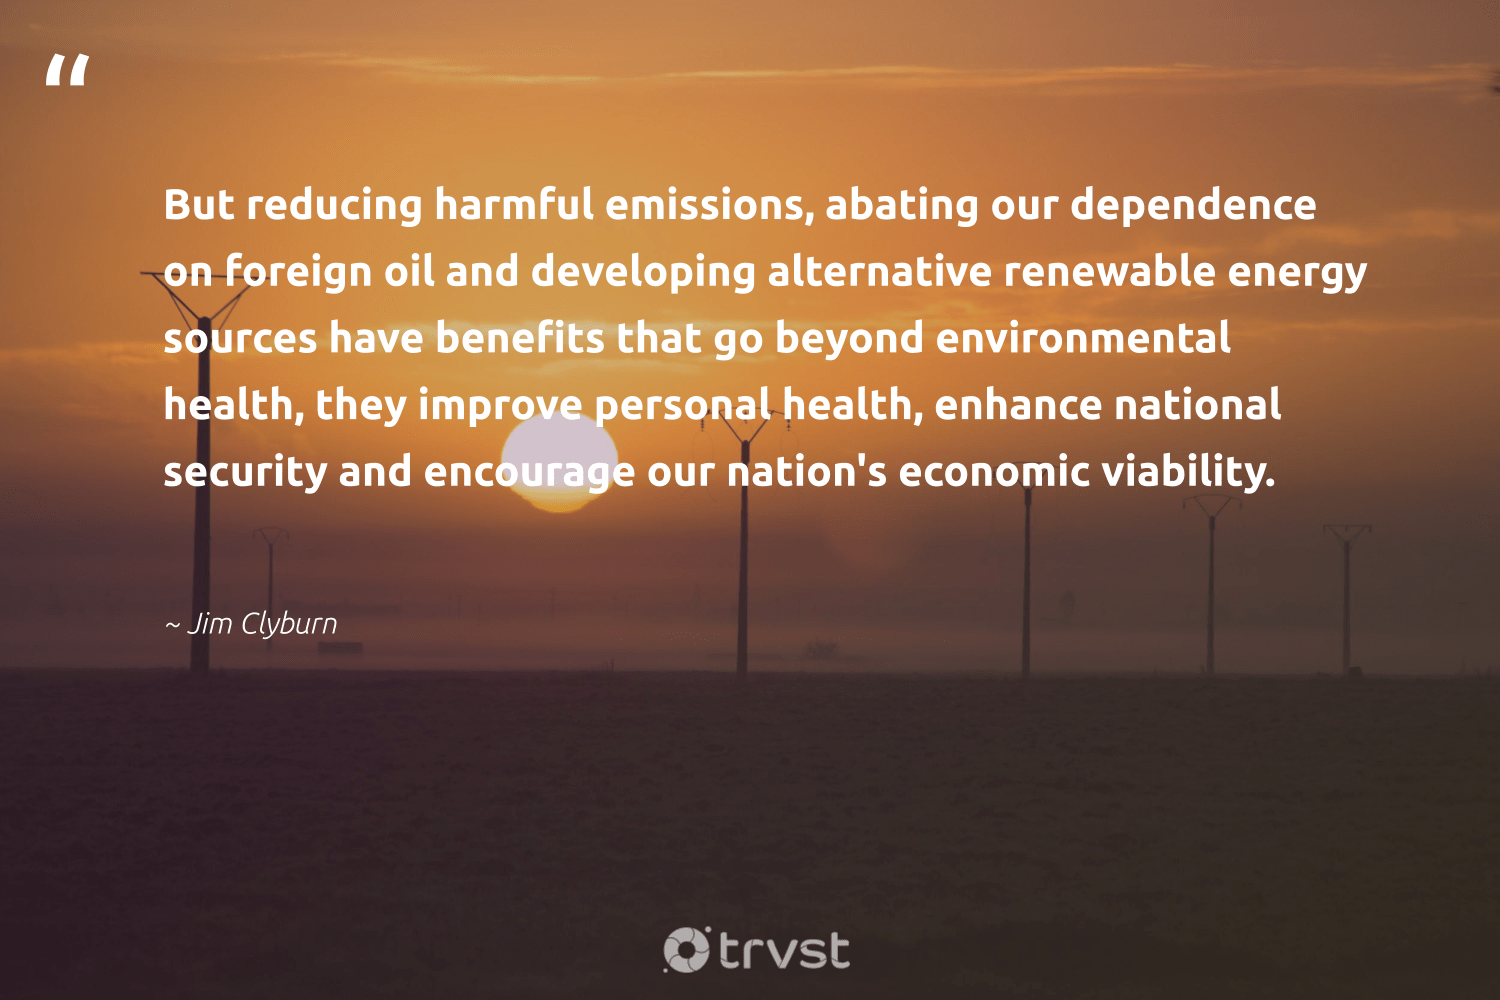 """""""But reducing harmful emissions, abating our dependence on foreign oil and developing alternative renewable energy sources have benefits that go beyond environmental health, they improve personal health, enhance national security and encourage our nation's economic viability.""""  - Jim Clyburn #trvst #quotes #renewableenergy #environmental #energy #renewable #oil #health #100percentclean #switchfuelenergy #planetearth #climateaction"""